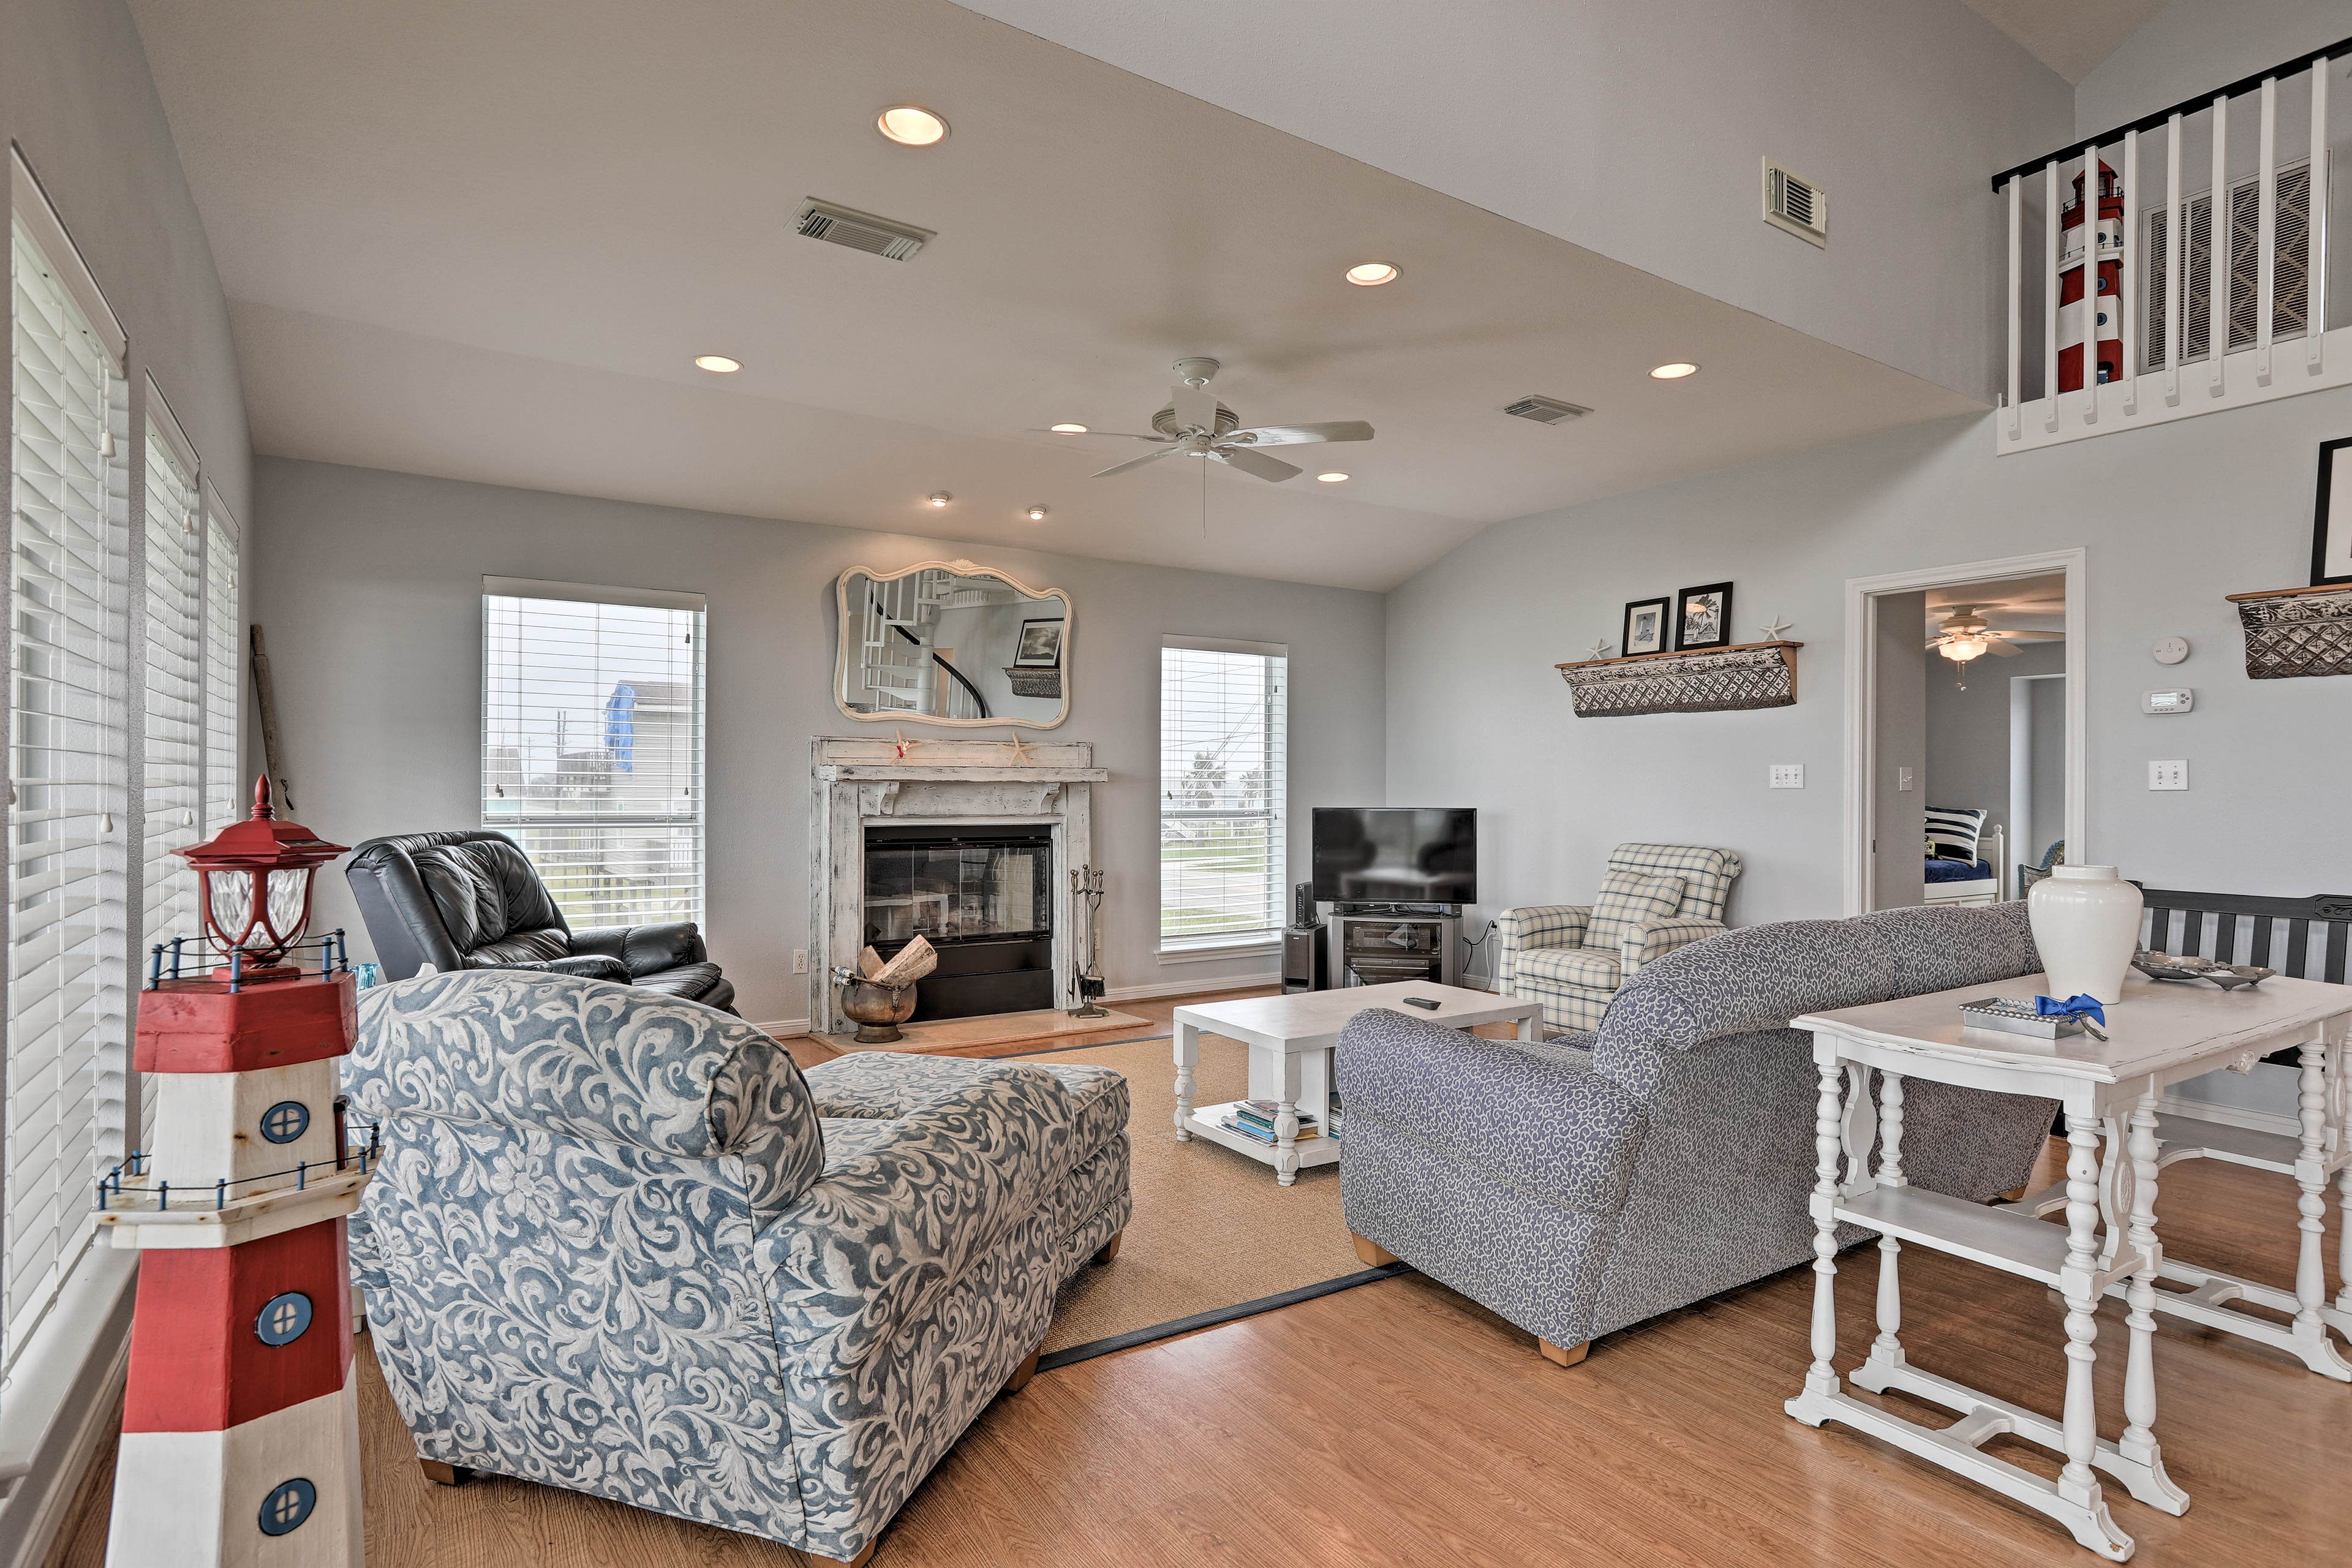 Inside, you'll find comforts like a spacious living room with a flat-screen TV.